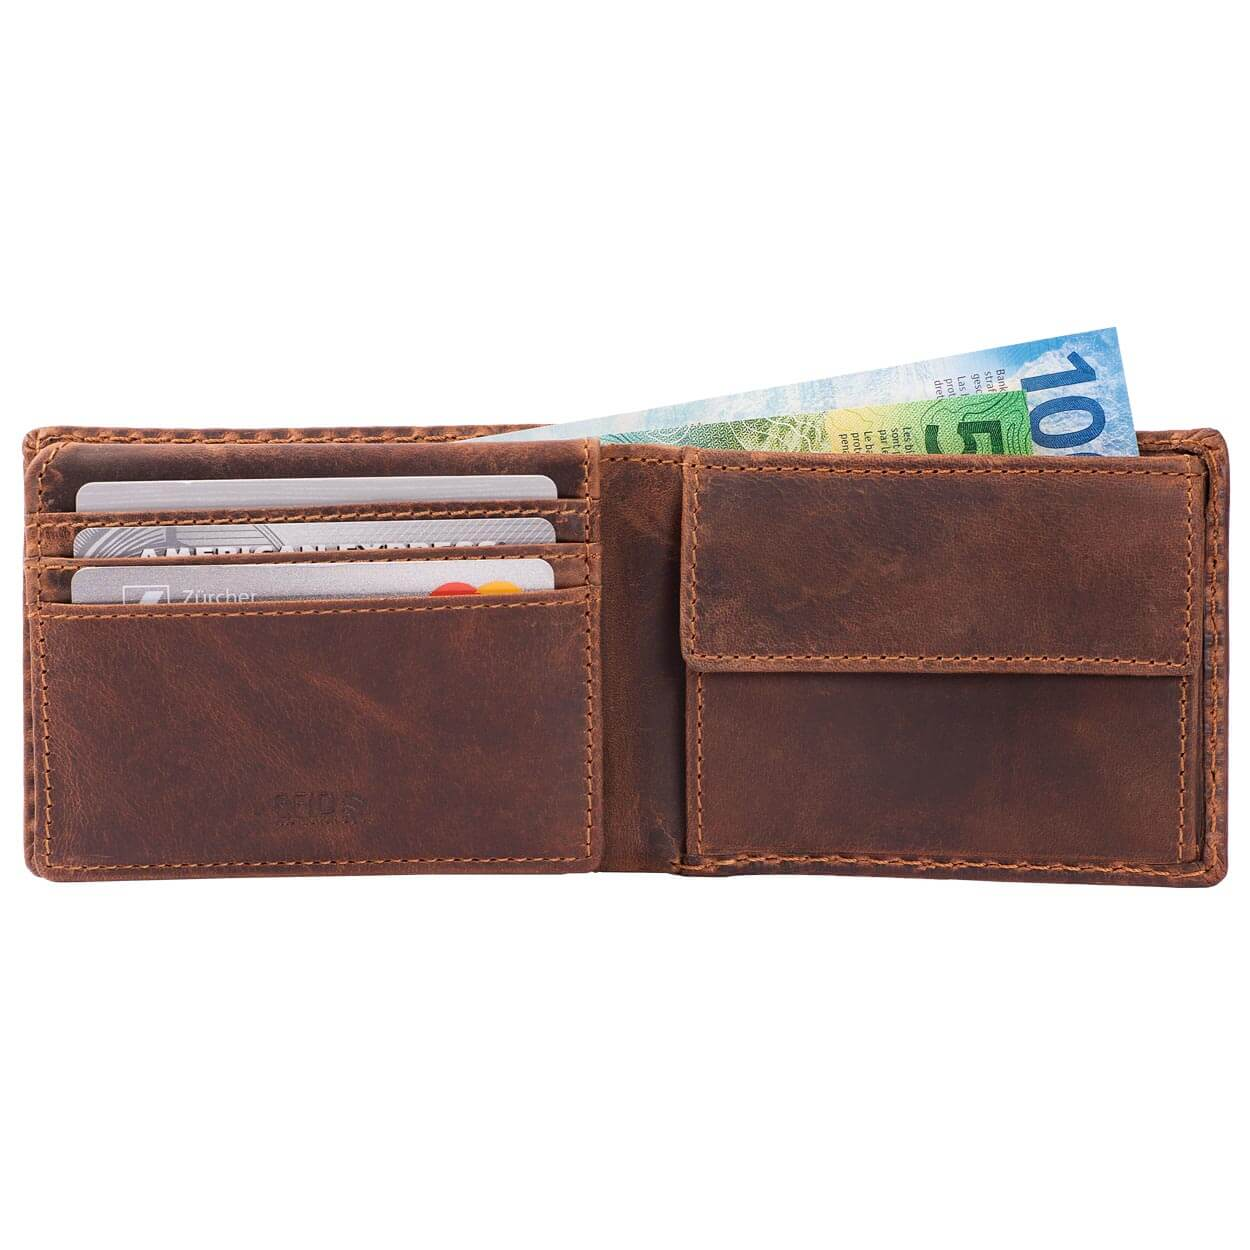 Compact Mens Leather Wallet with Coin Compartment in Antique Brown - Inside View, Flip-ID Closed